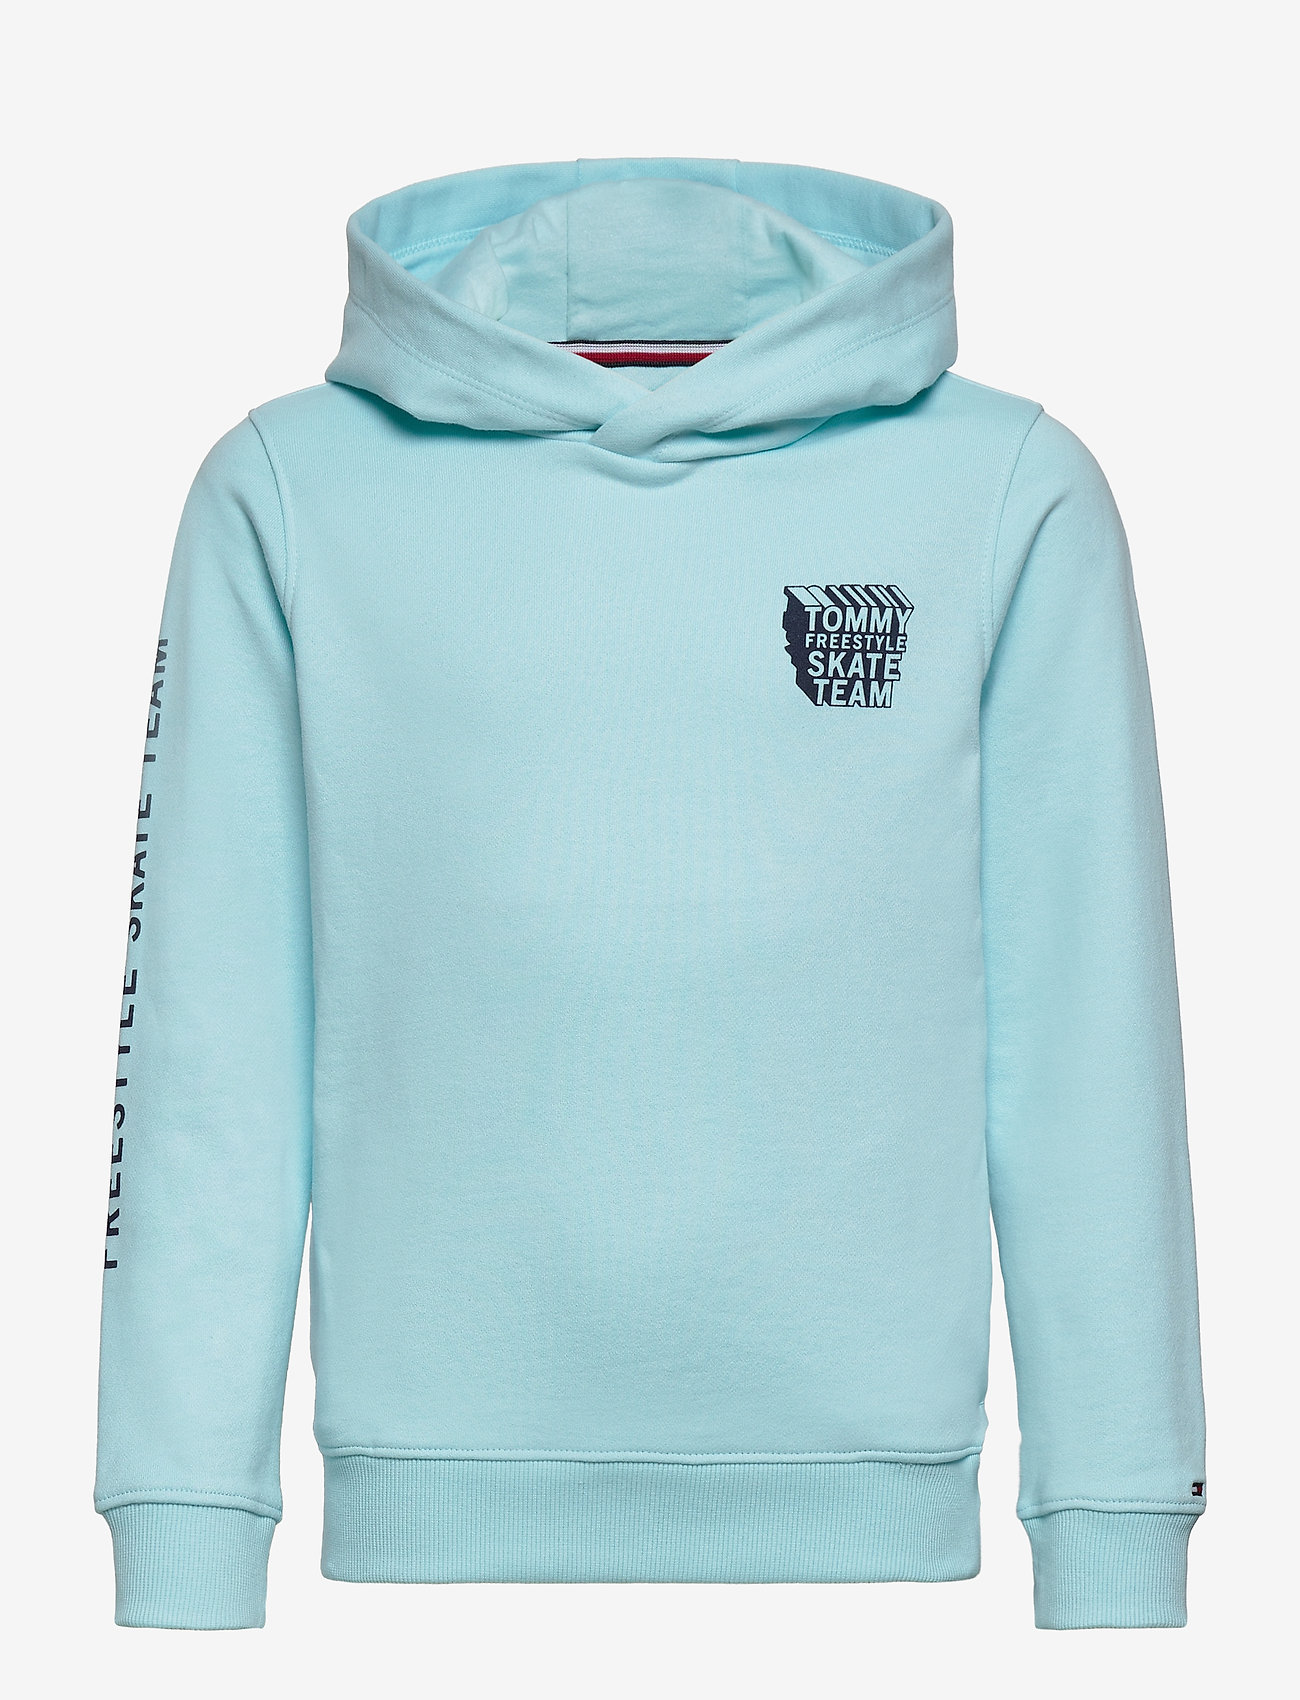 Tommy Hilfiger - TH COOL GRAPHIC HOODIE - frost blue - 0